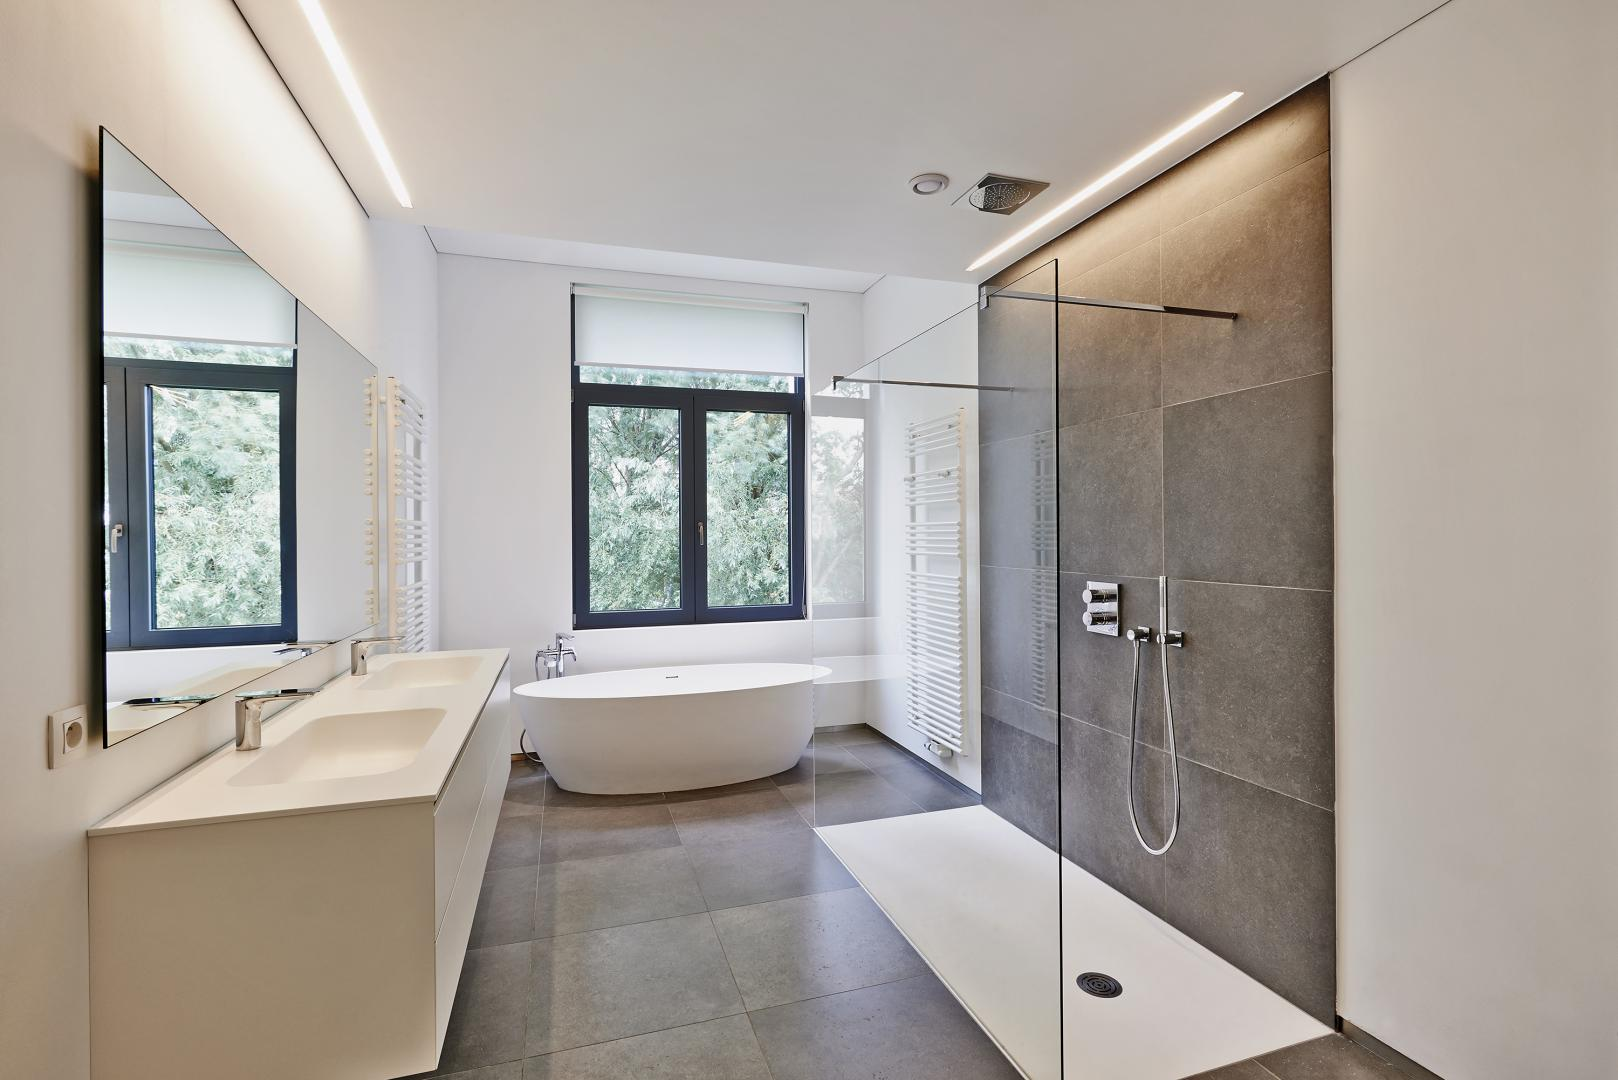 renovation-salle-bain.php